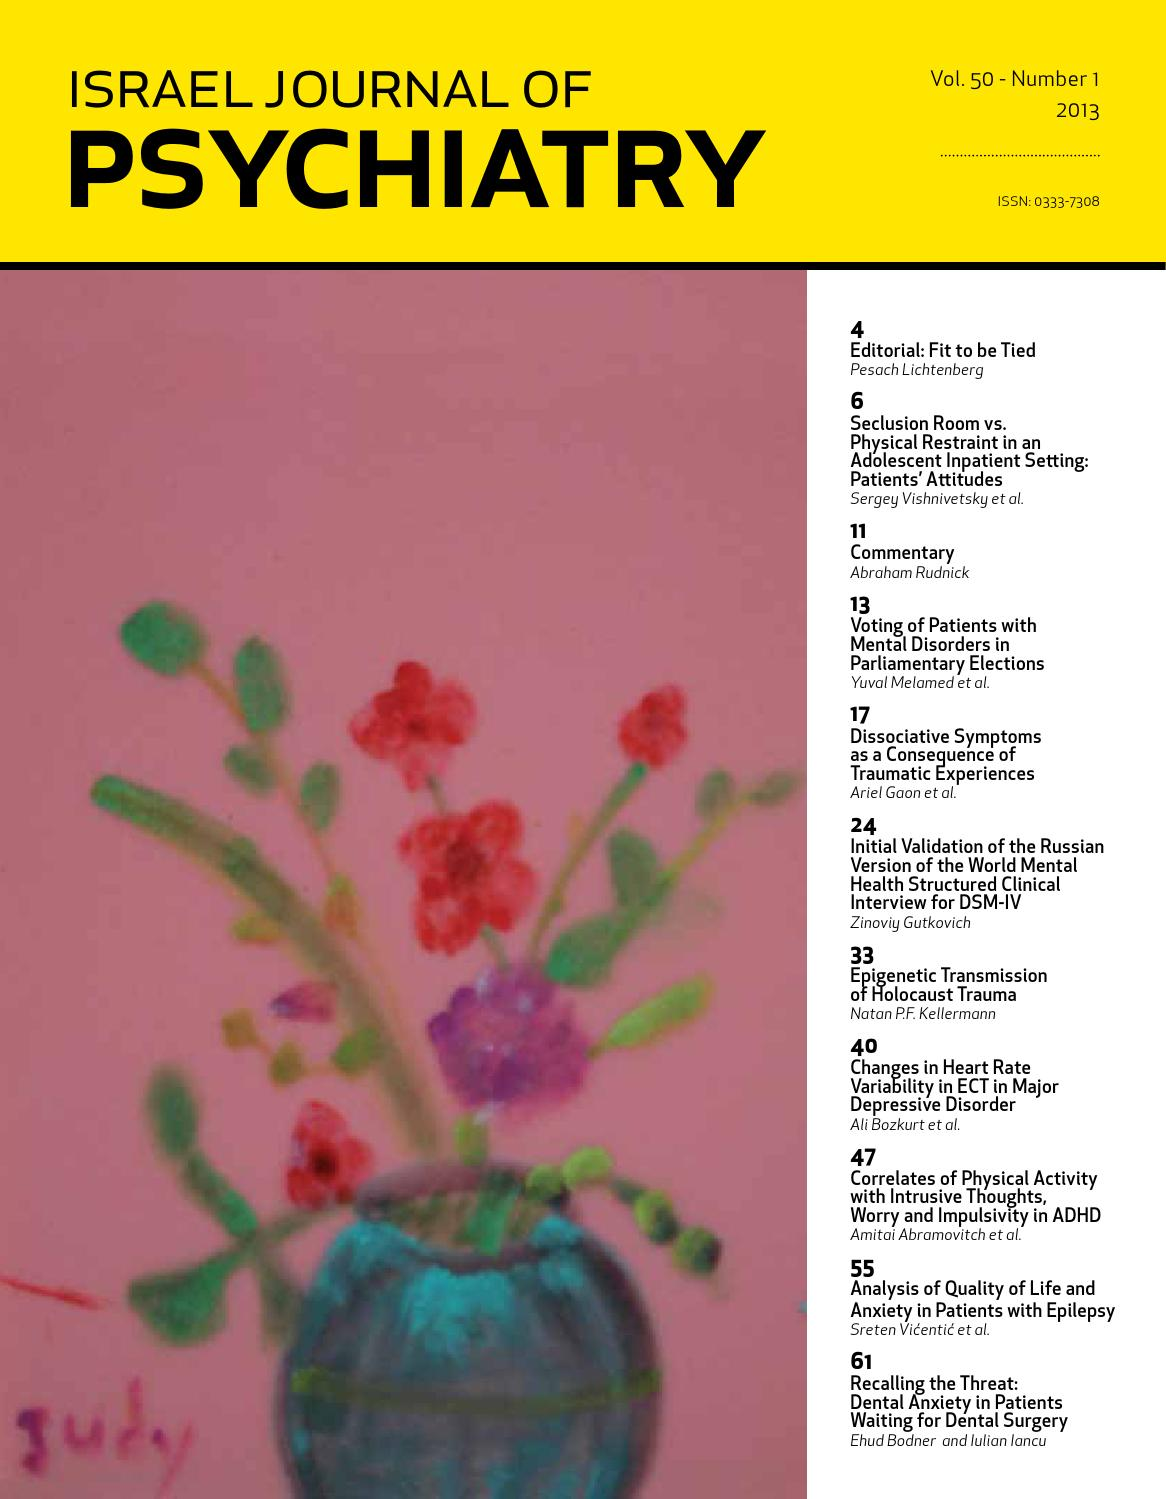 Israel Journal of Psychiatry and Related Sciences by MEDIC - issuu